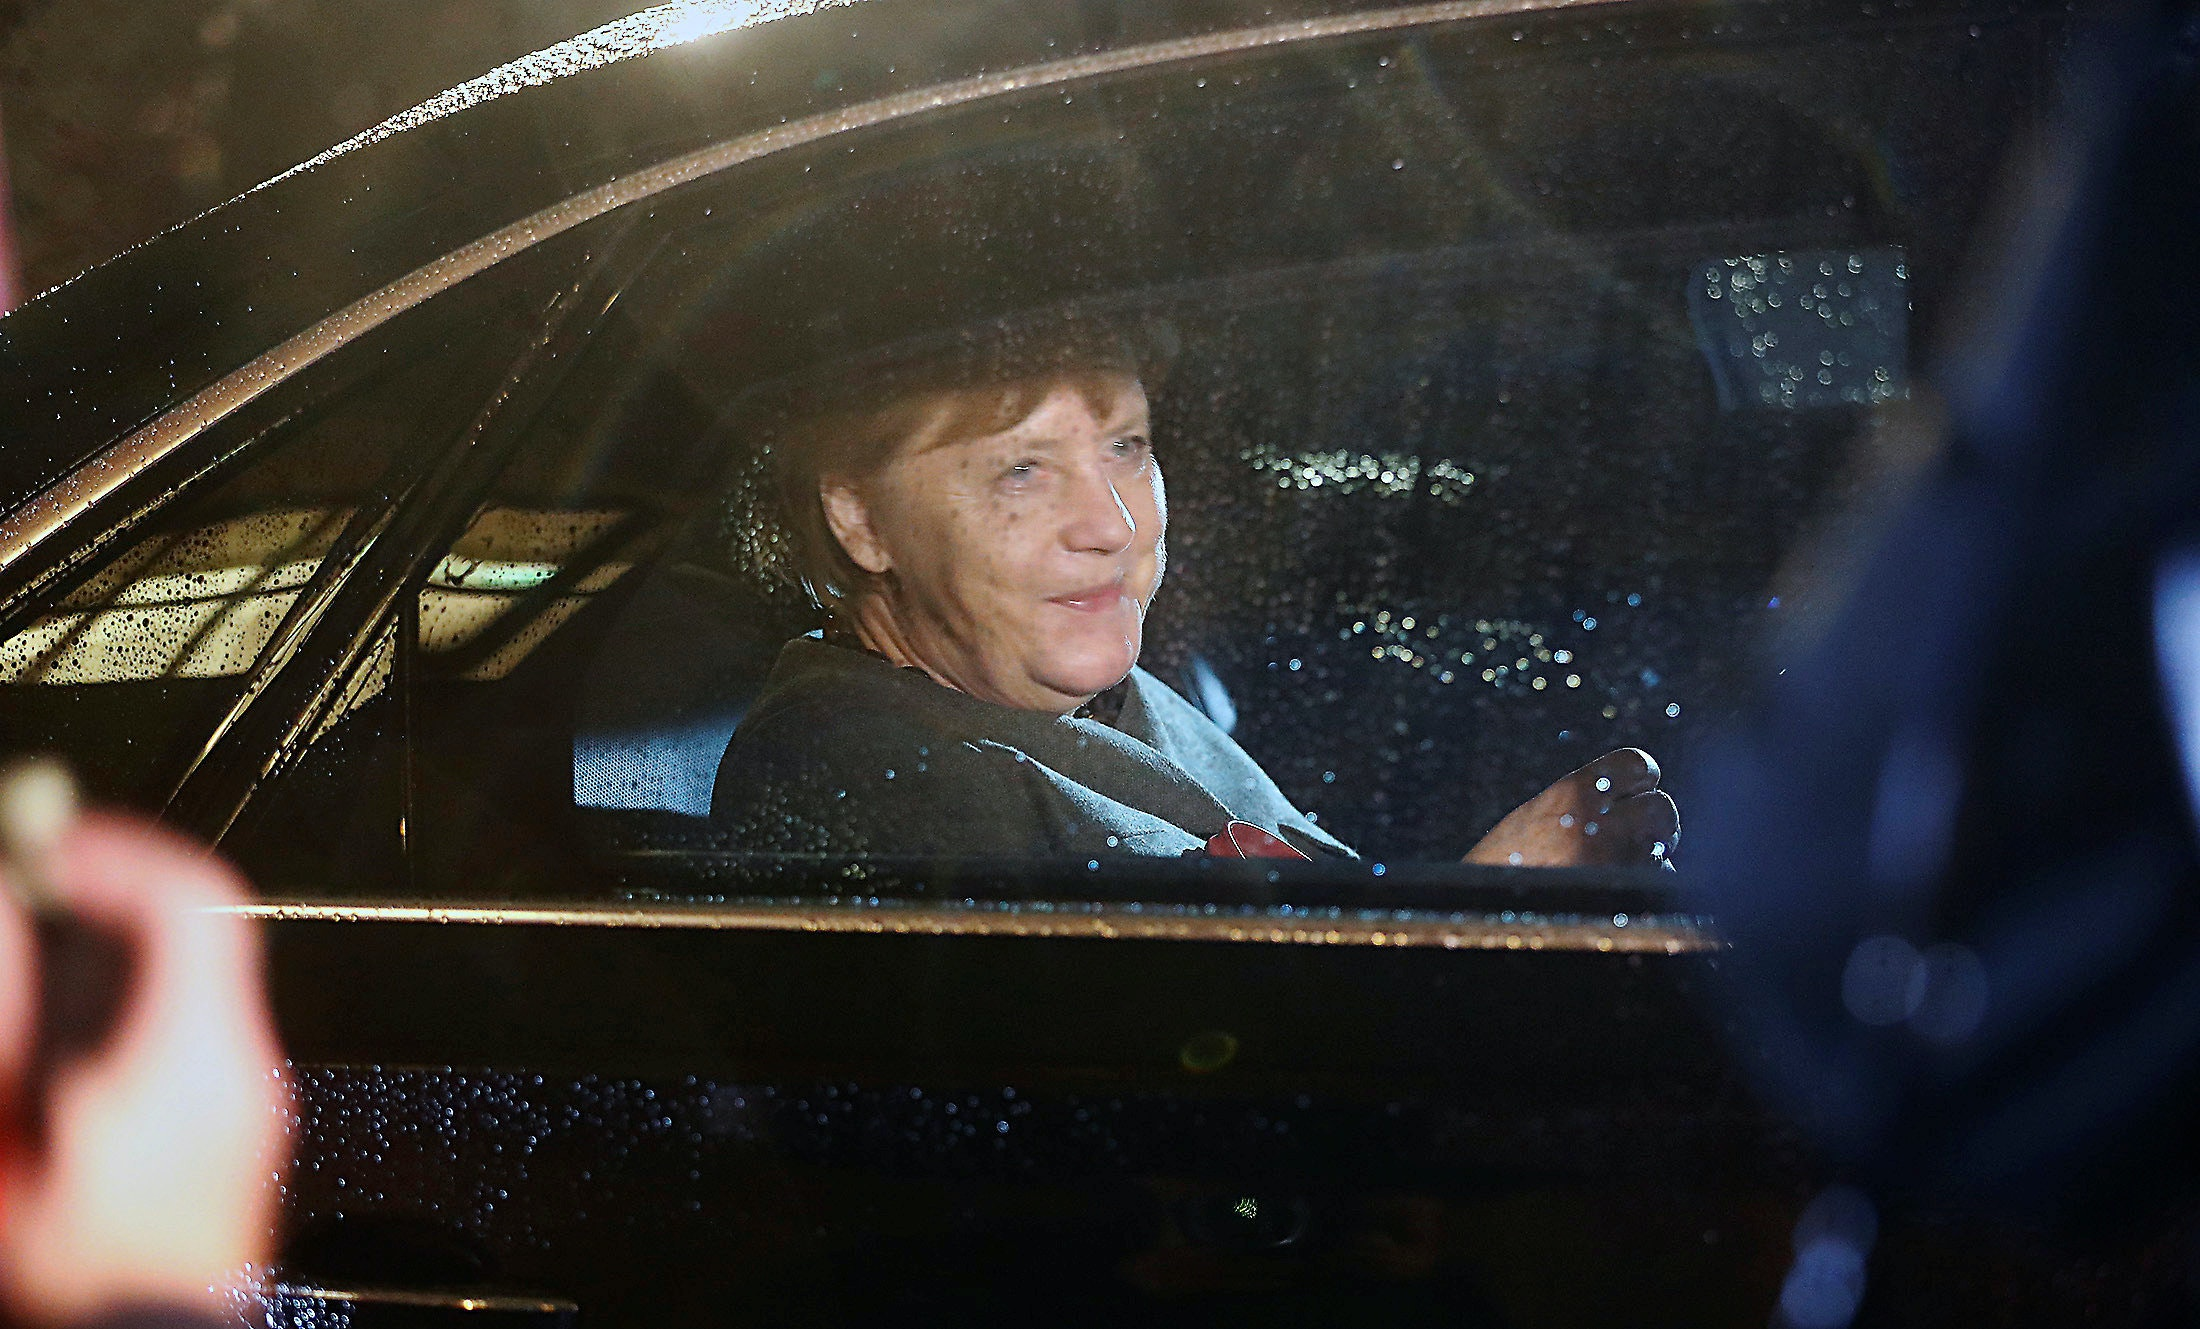 German Chancellor Angela Merkel of the Christian Democratic Union (CDU) leaves the German Parliamentary Society after exploratory talks about forming a new coalition government in Berlin, Germany, November 17, 2017. REUTERS/Hannibal Hanschke